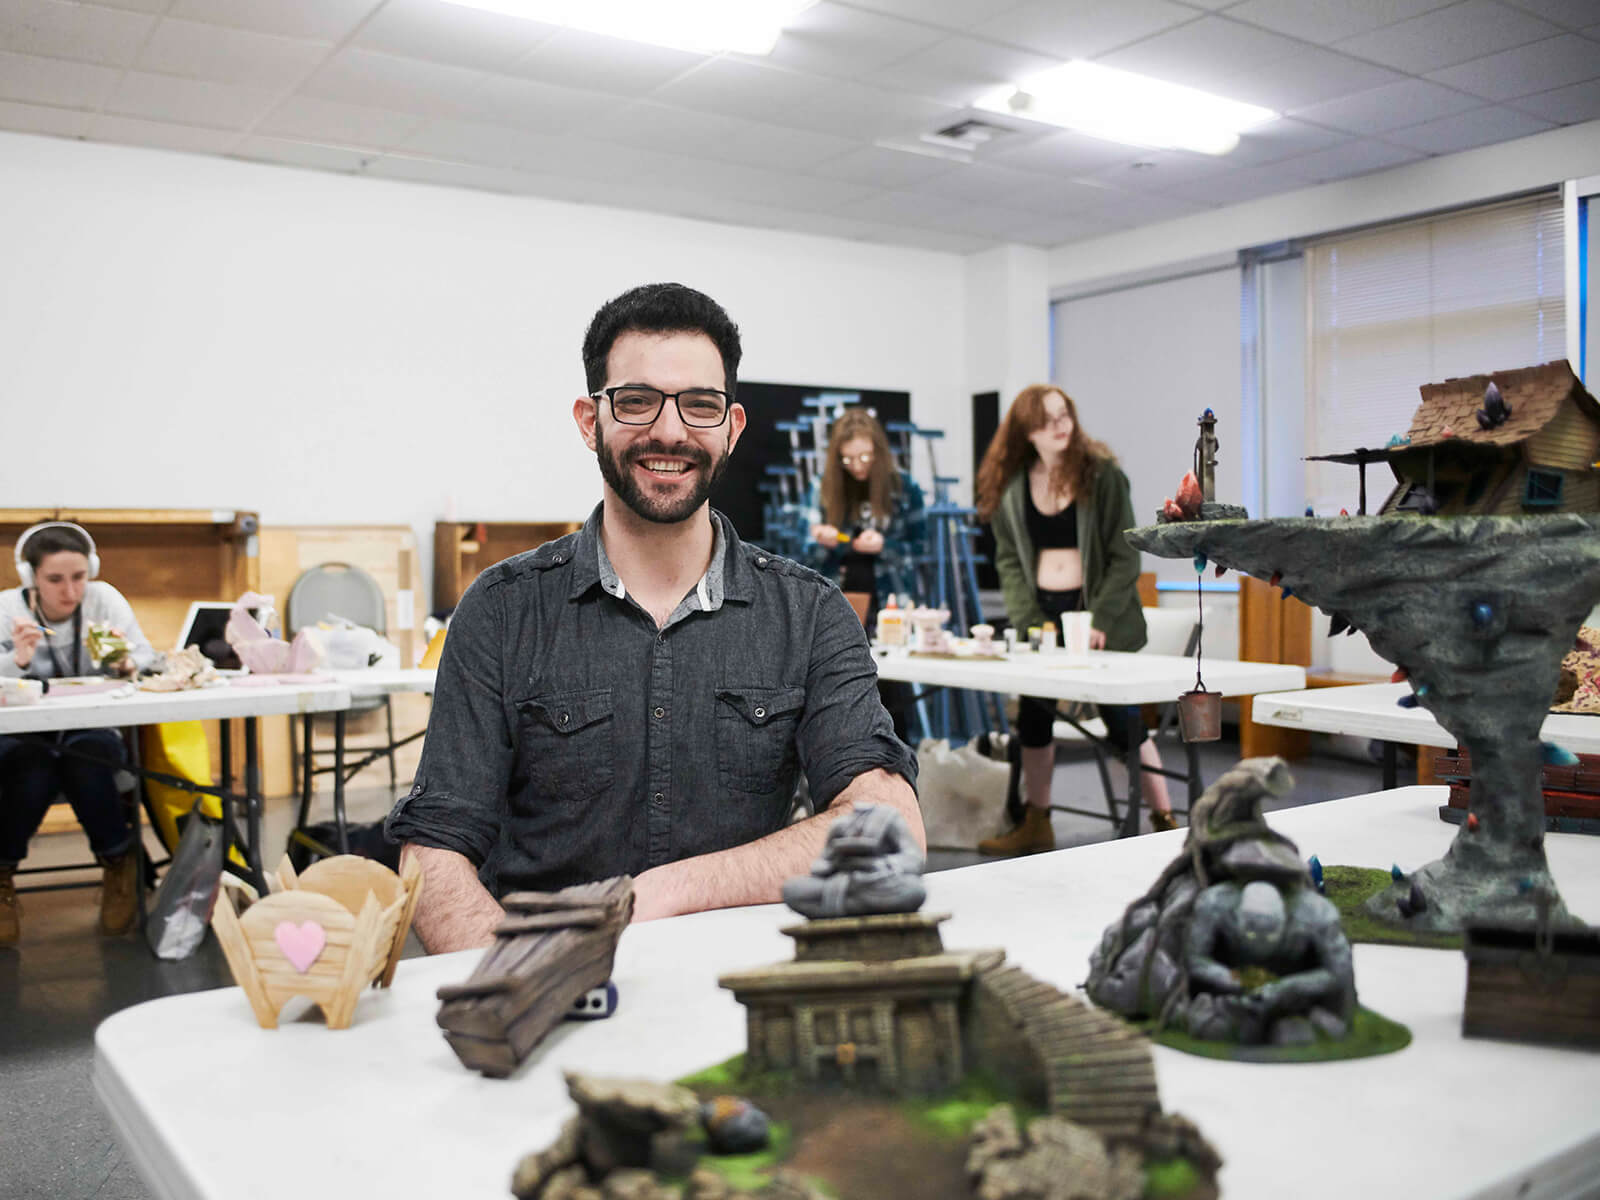 Professor Danny Samuels poses in front of student work in his miniature set design class.